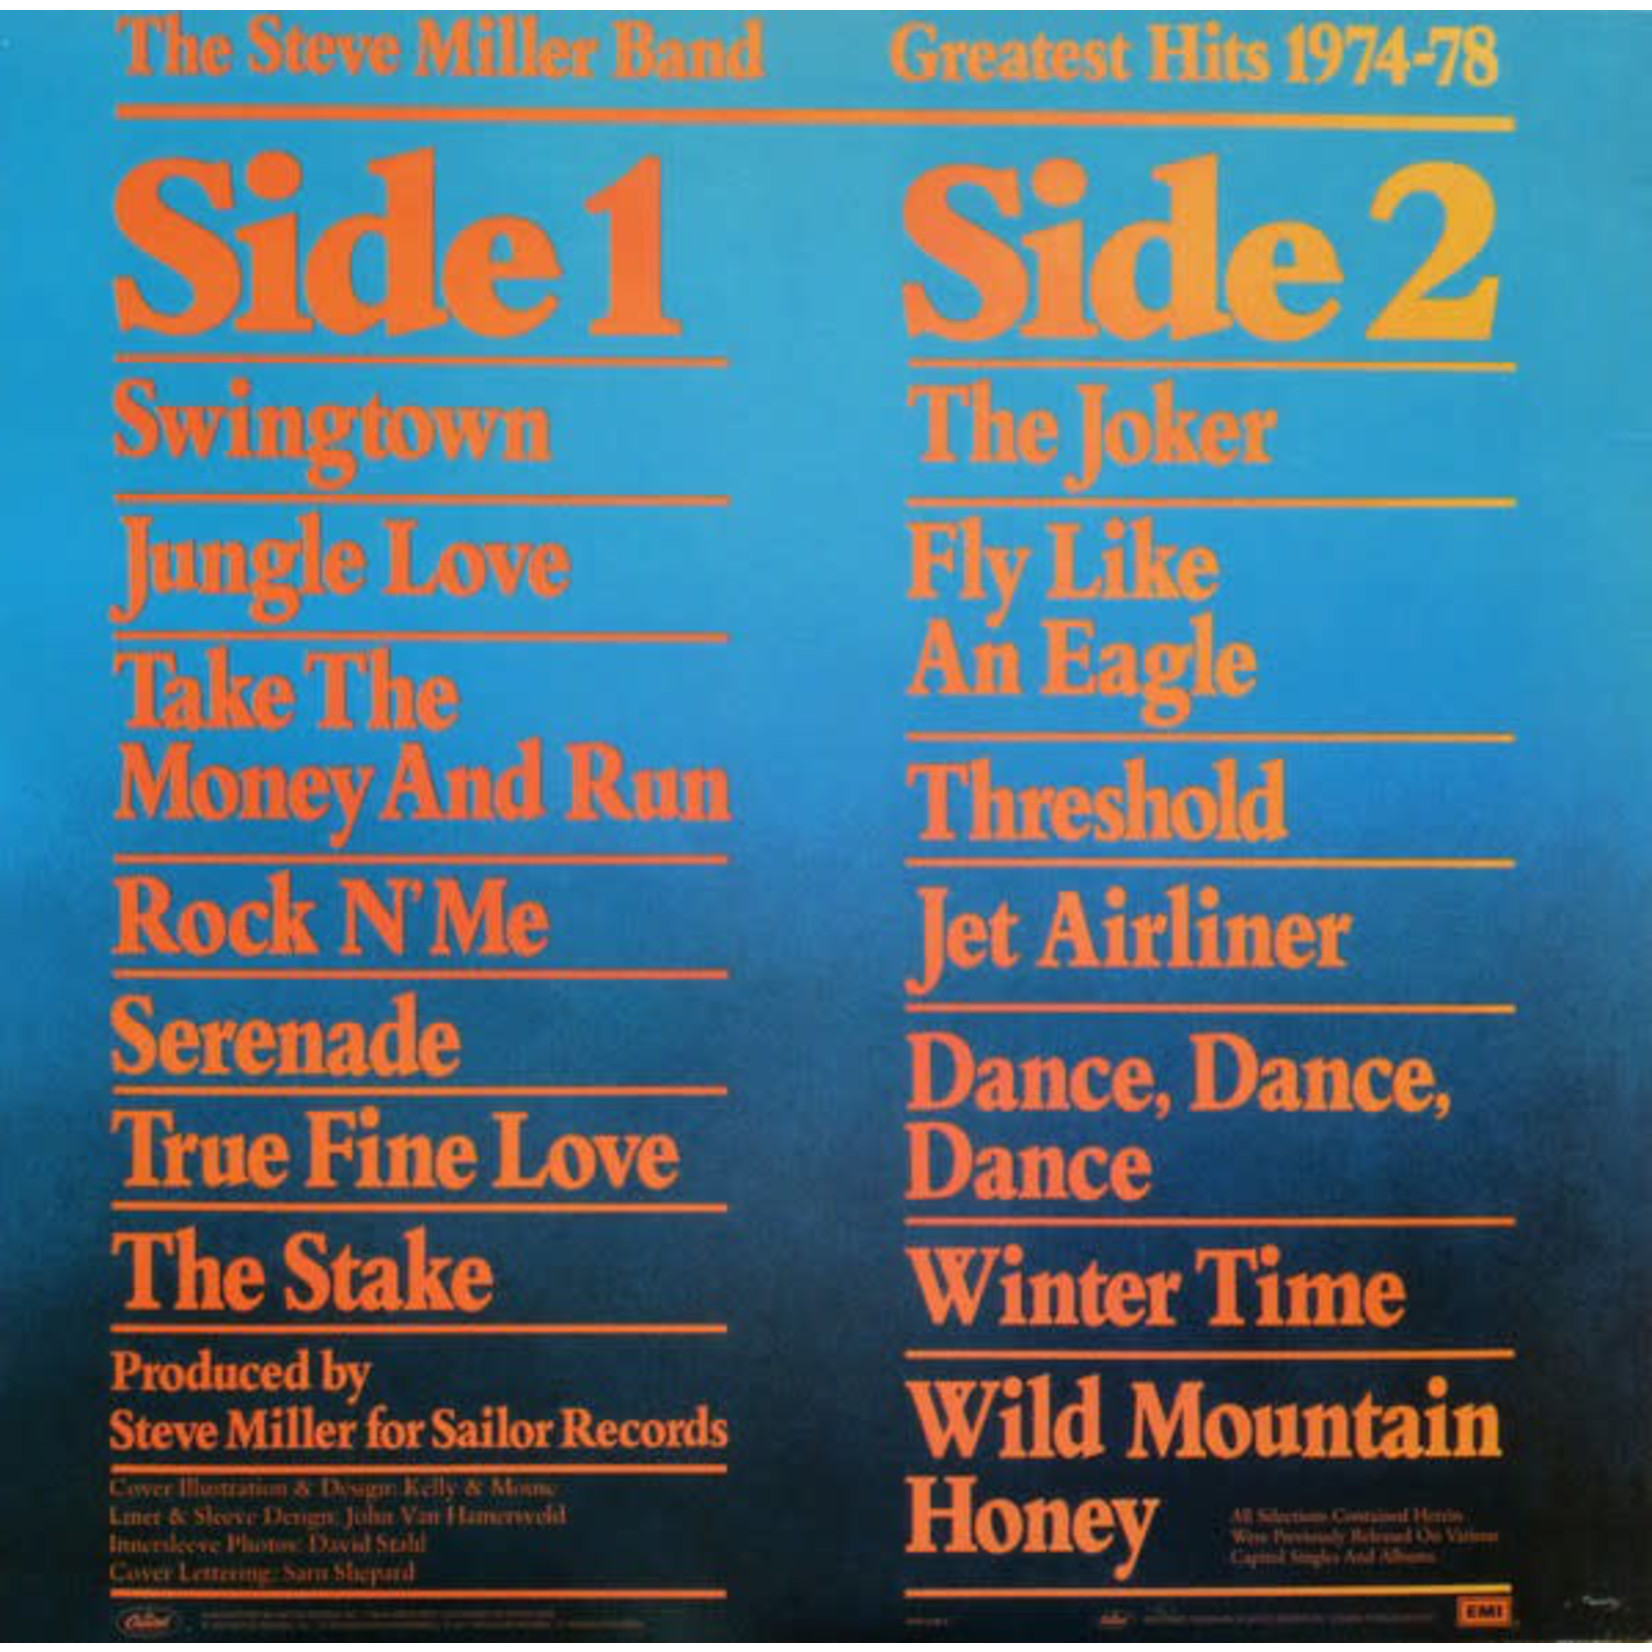 STEVE MILLER BAND GREATEST HITS 1974-78 (LIMITED EDITION)